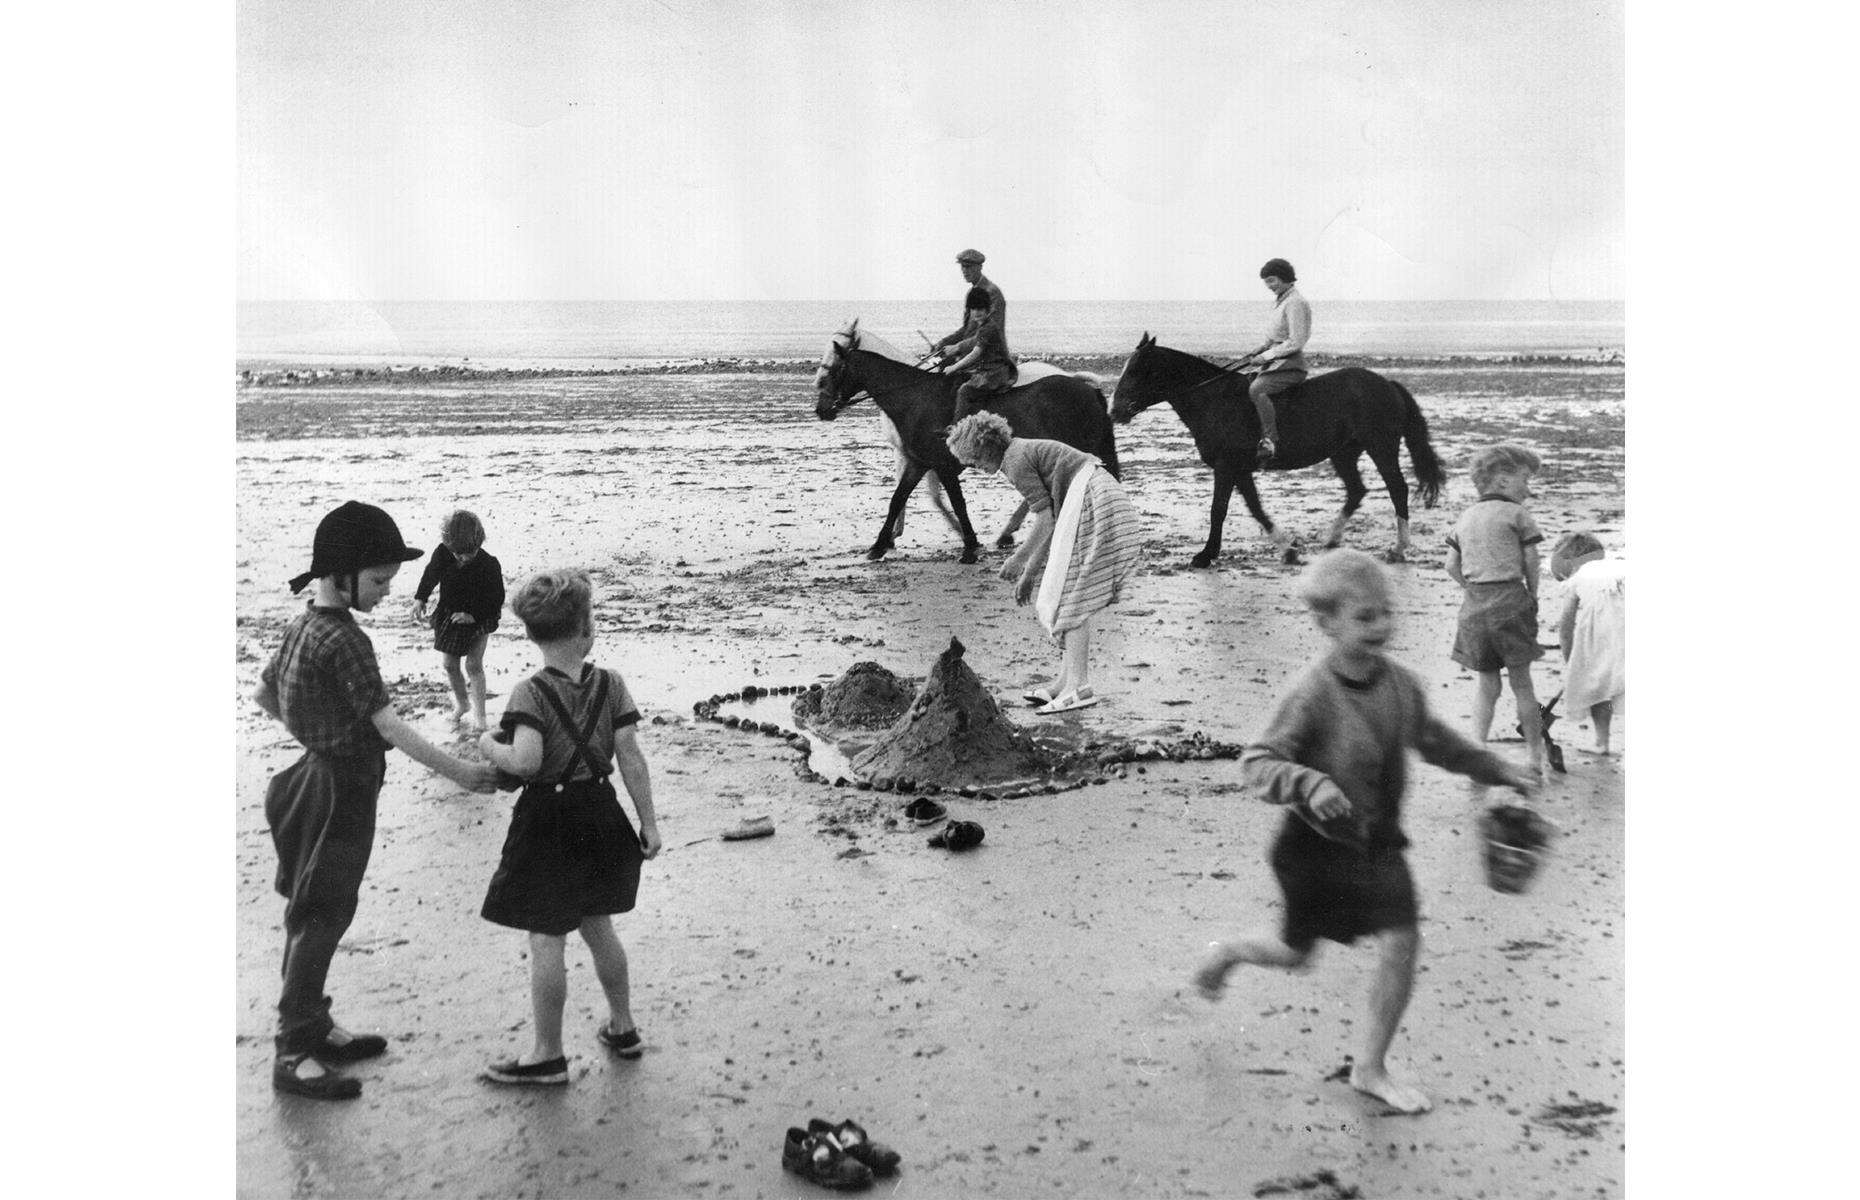 Slide 15 of 38: The seaside escape remained the ultimate British vacation through the 1950s – think ice cream and fish and chips, pony rides and puppet shows, and the windswept shores of the English coast. In this 1954 photo, families play on the sand in Angmering in West Sussex.